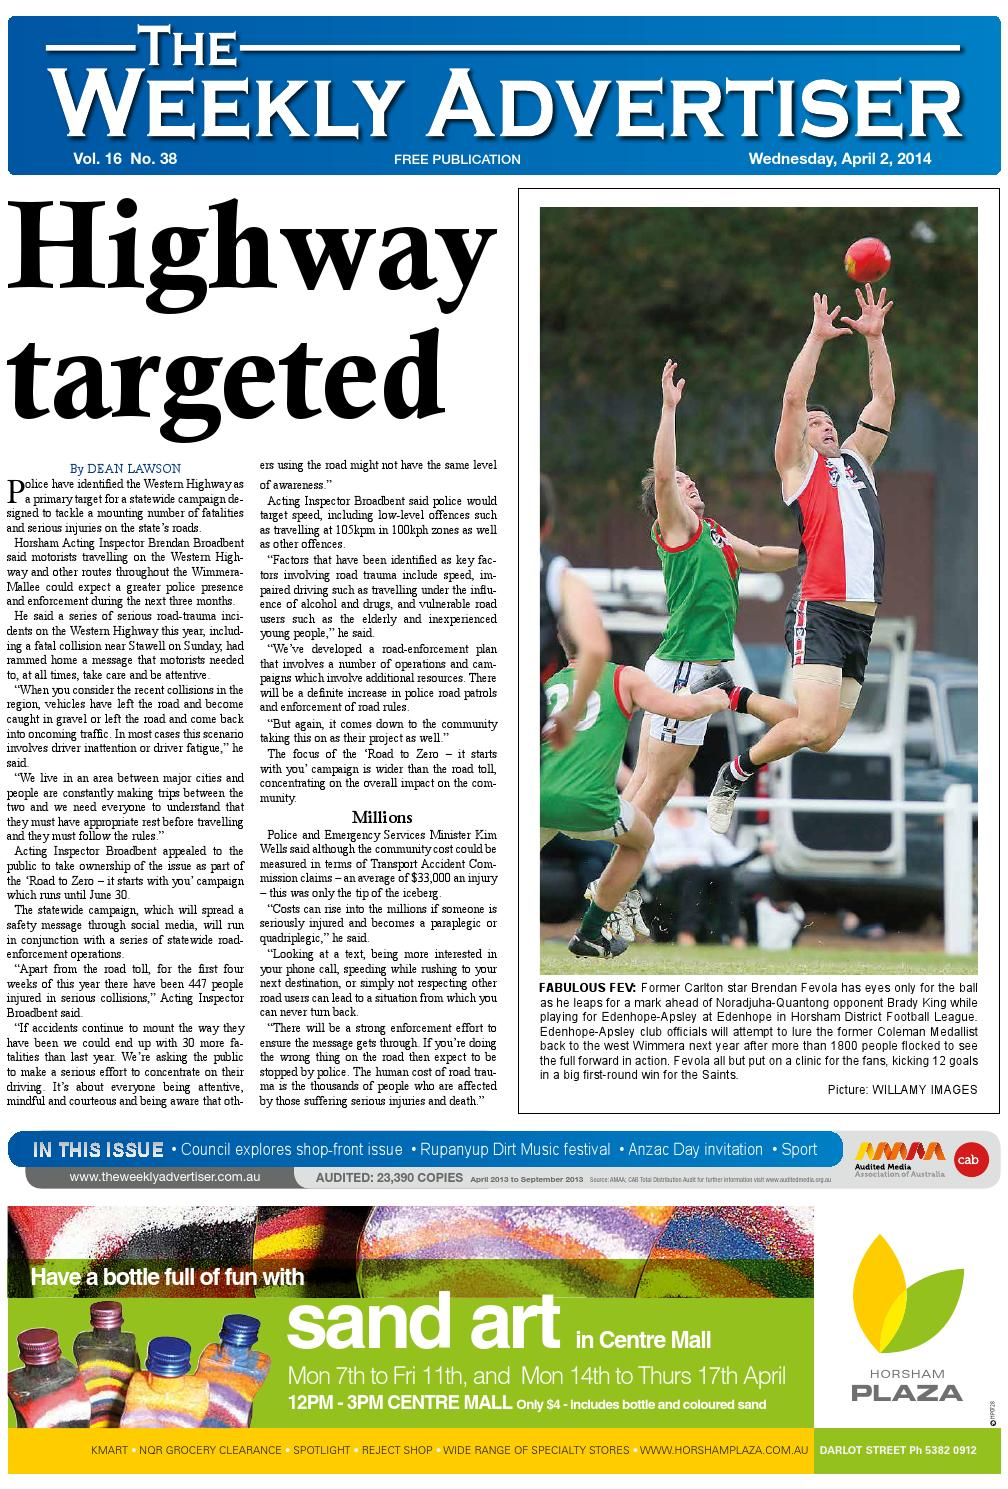 70a0968e The Weekly Advertiser - Wednesday, April 2, 2014 by The Weekly Advertiser -  issuu